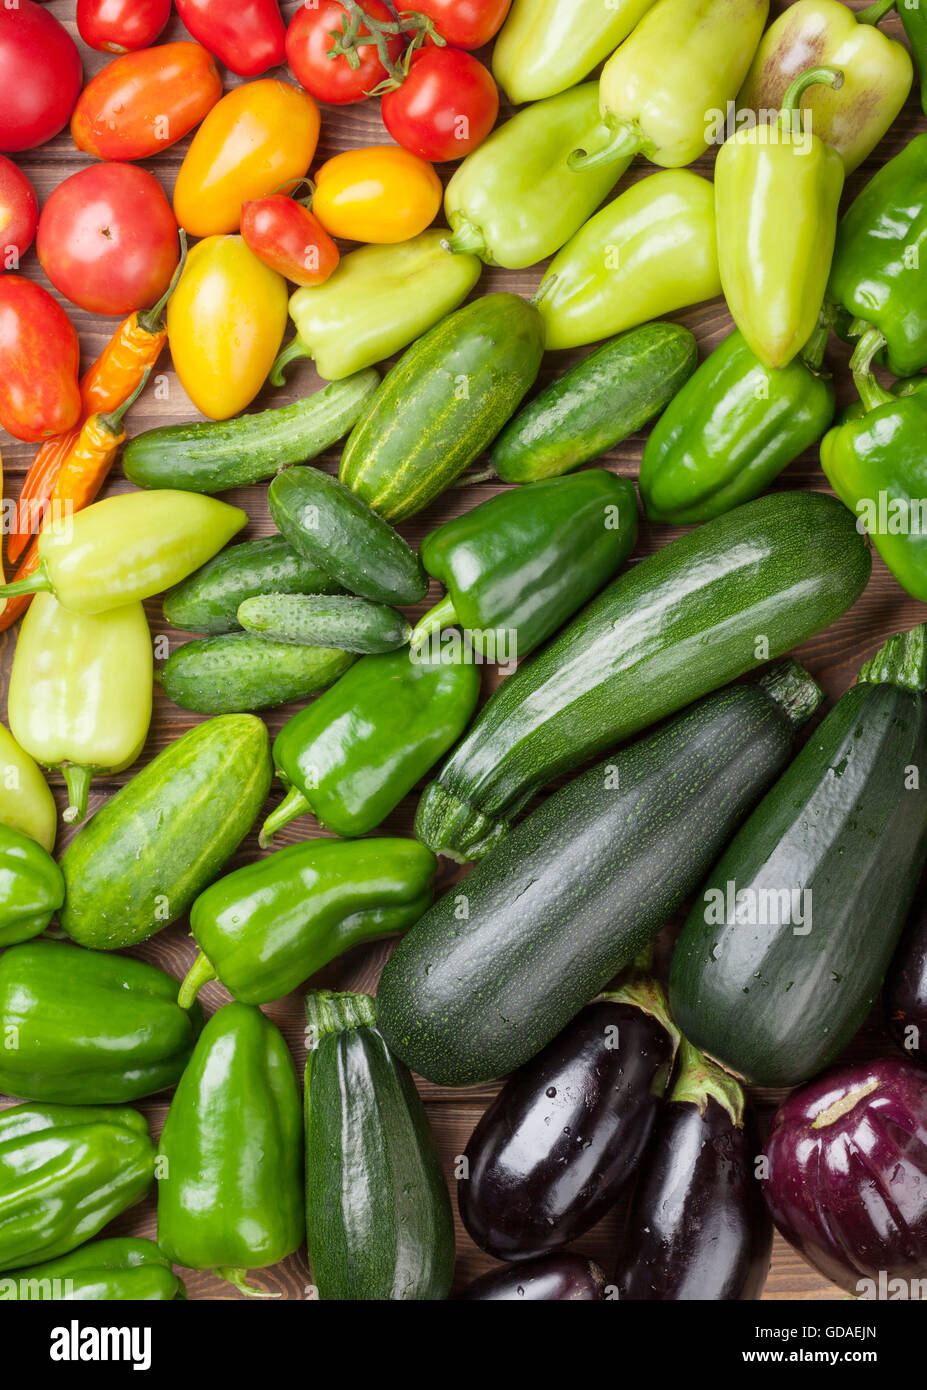 Fresh farmers garden vegetables on wooden table. Top view - Stock Image